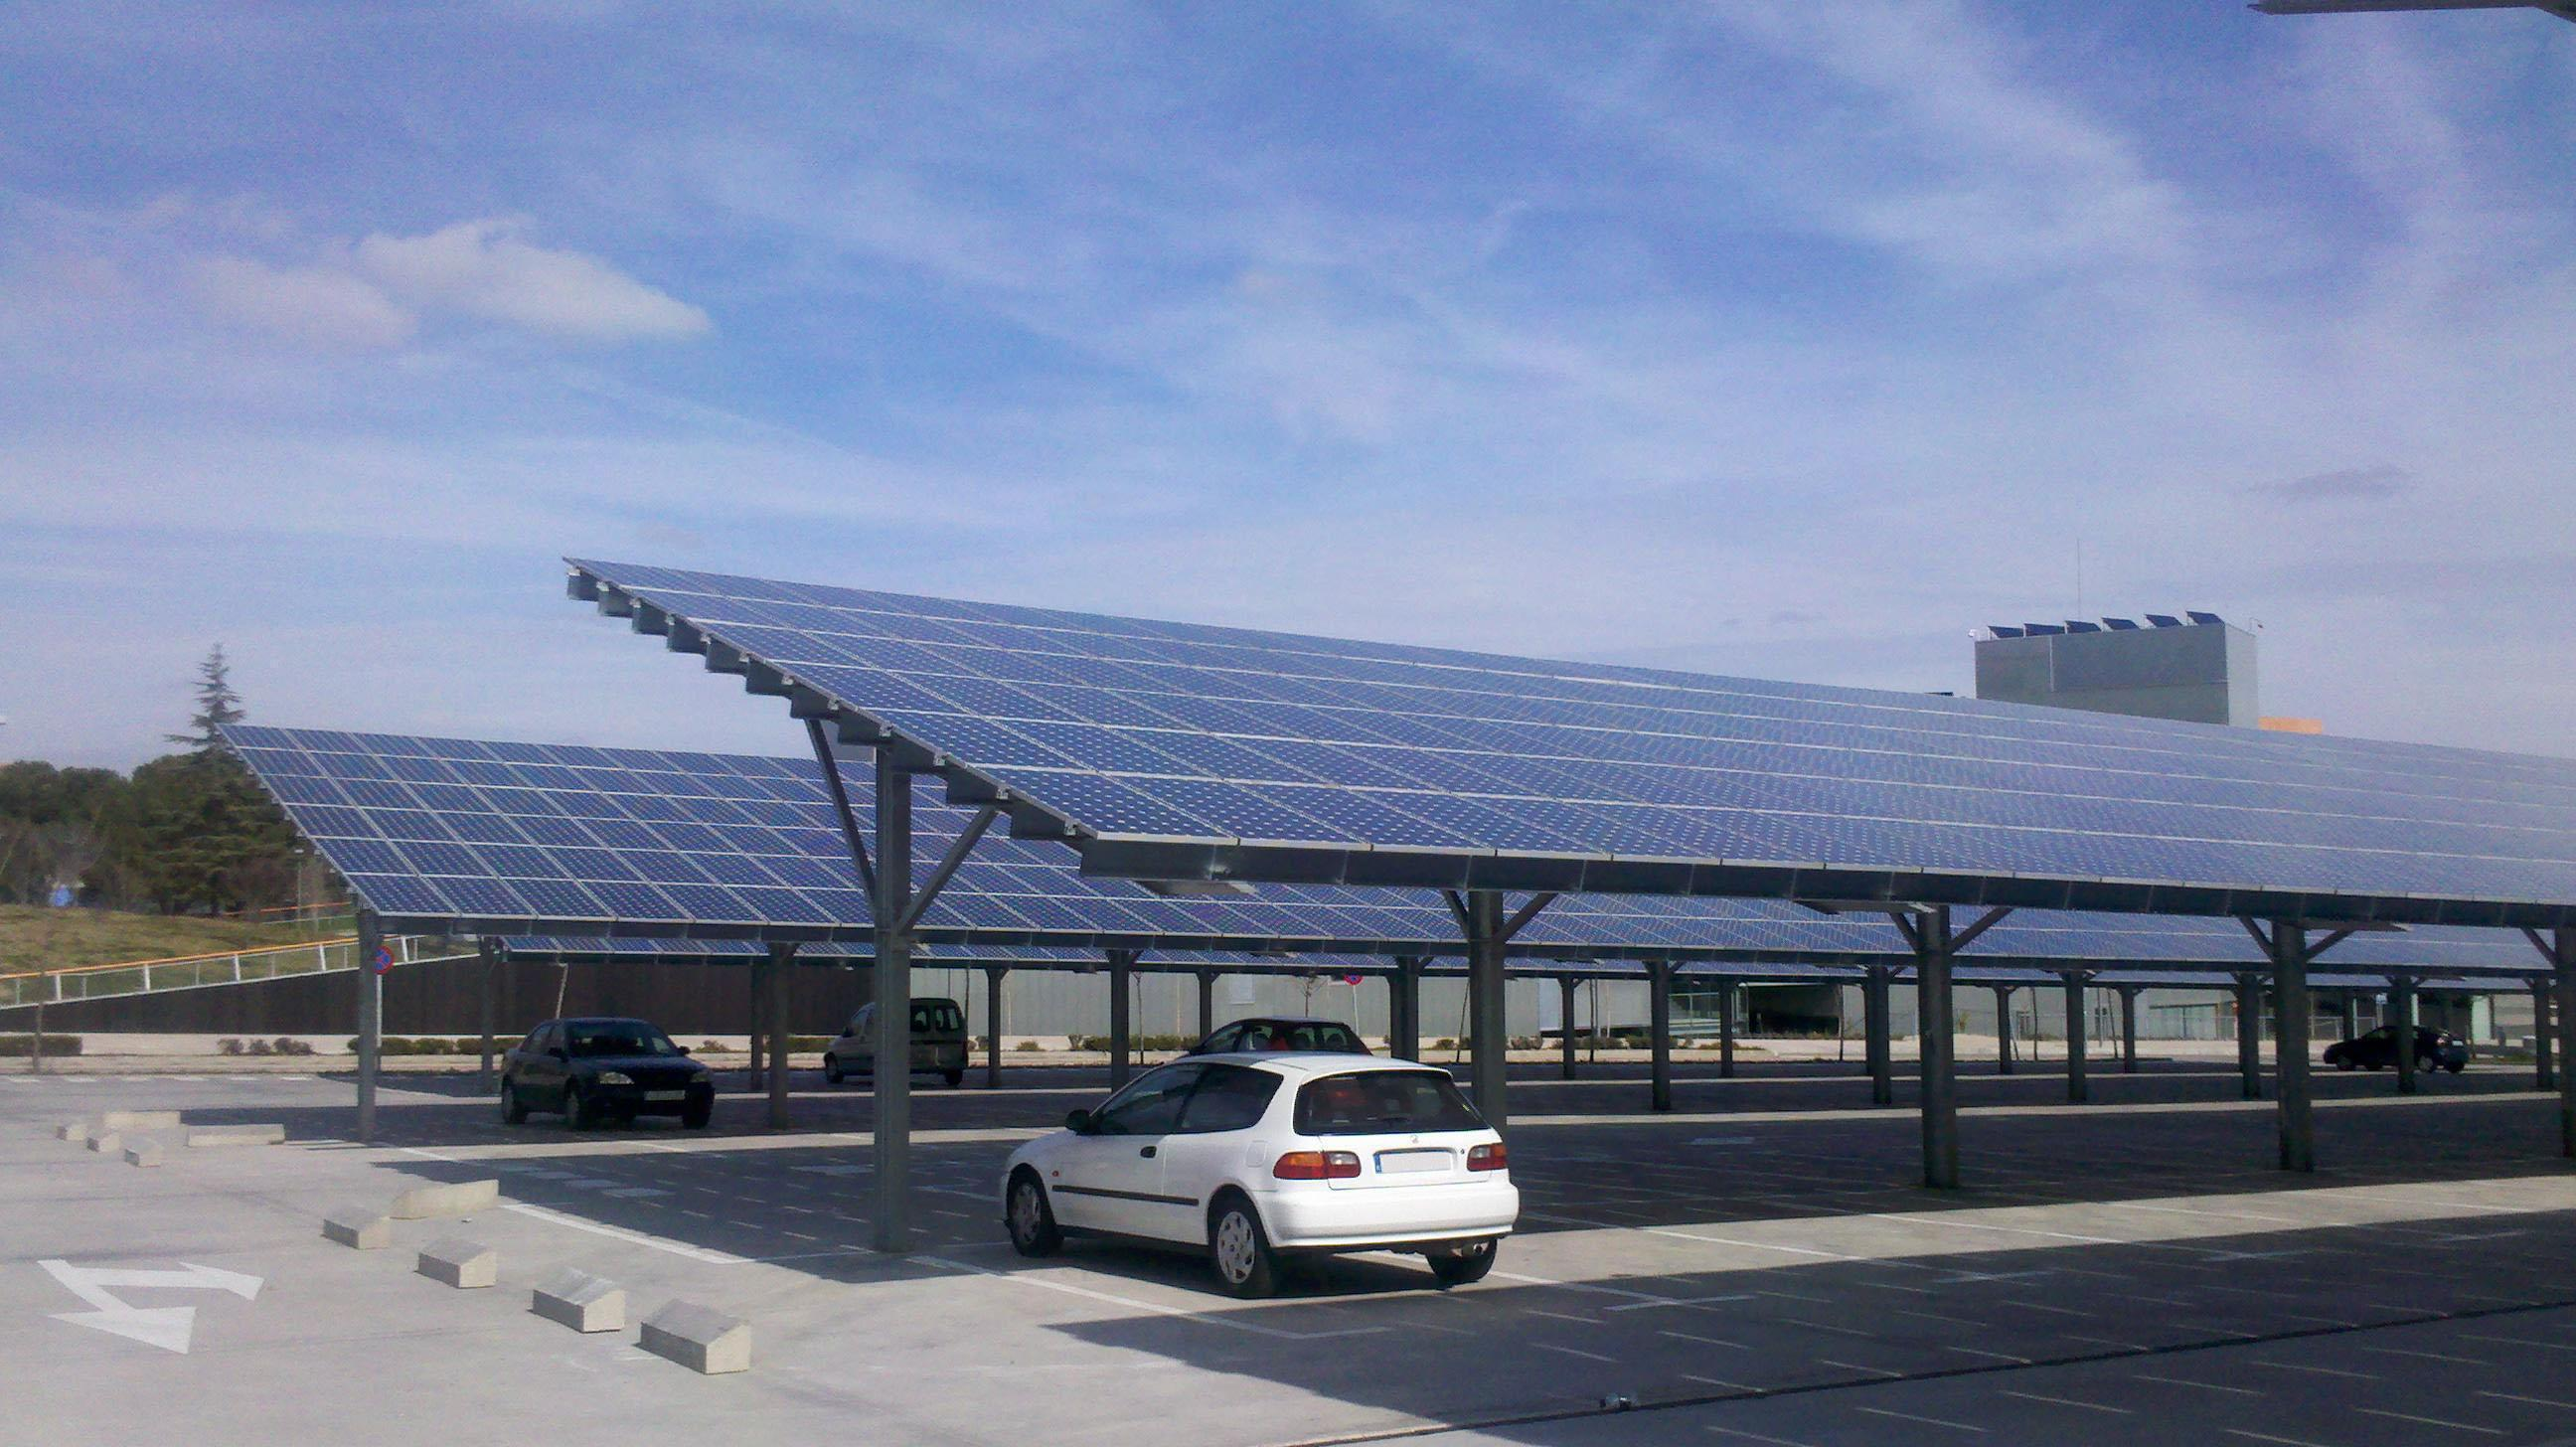 Multi-purpose solar car park in Spain.